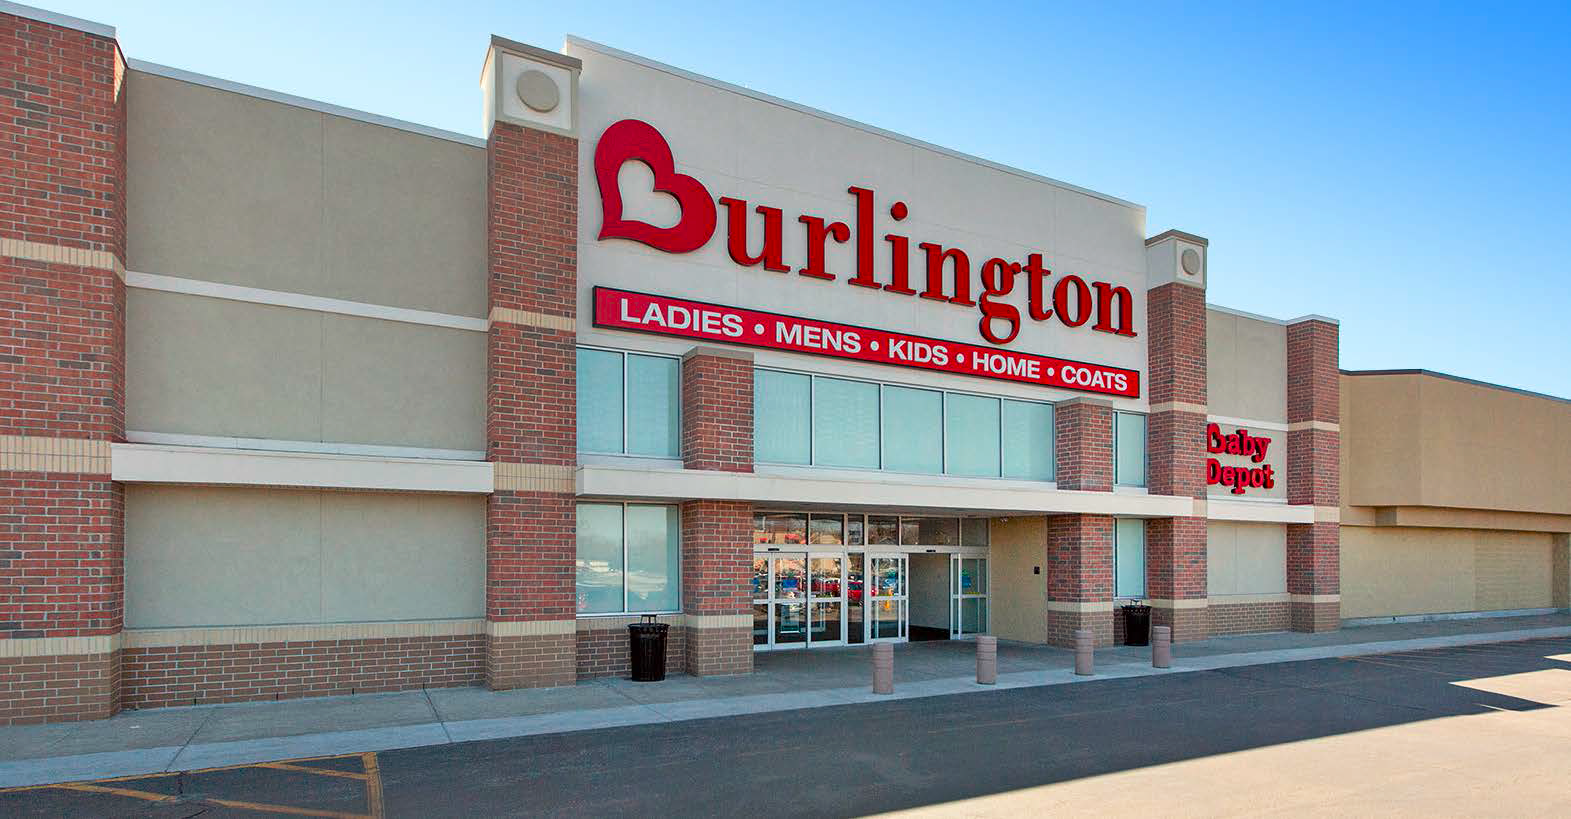 Core Acquistions Commercial Real Estate Investment